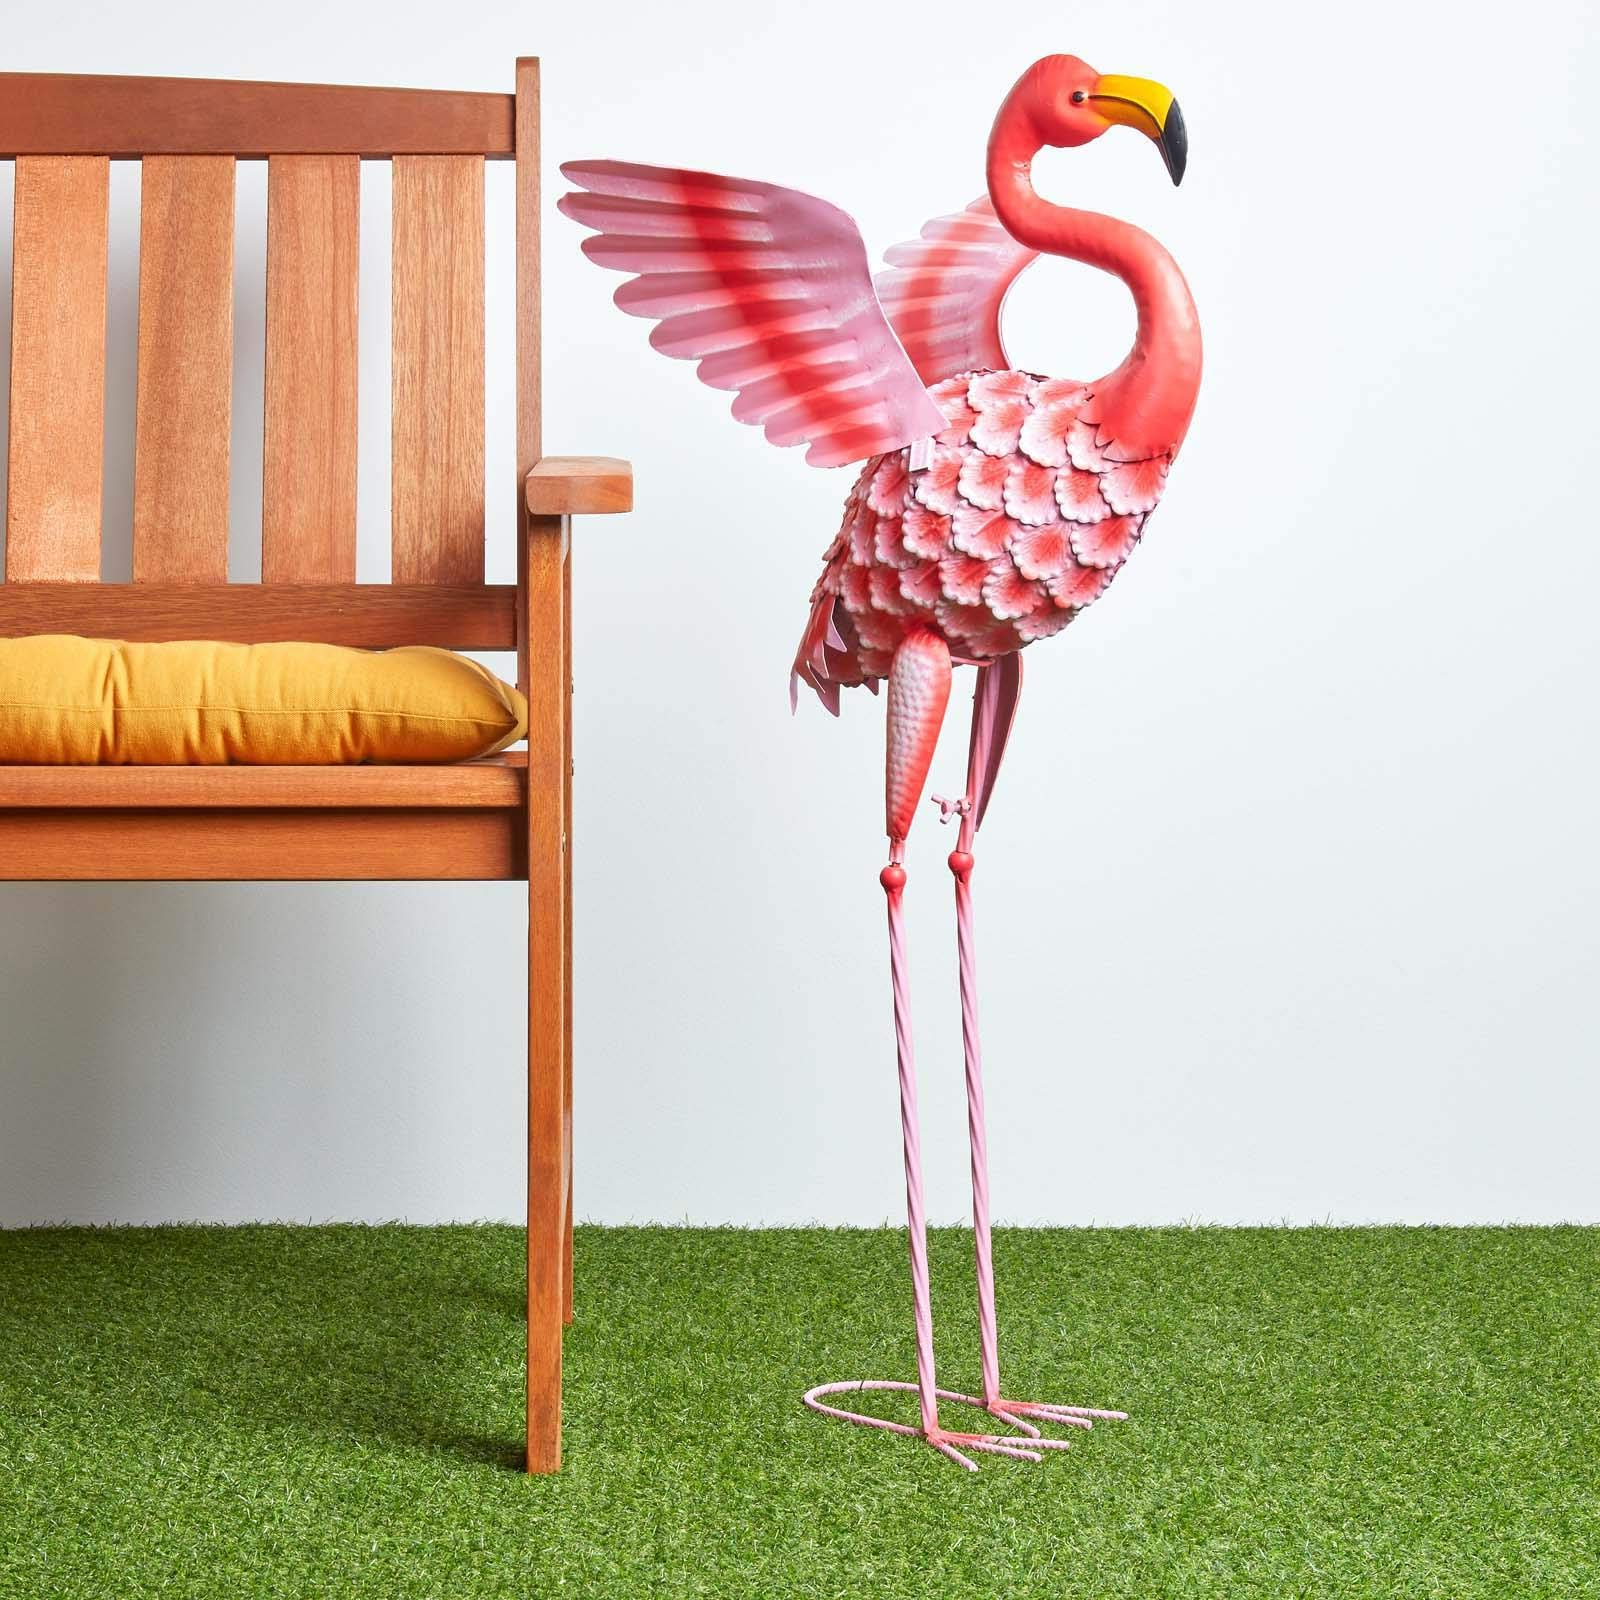 Most Popular Homescapes Metal Garden Bright Pink Flamingo Statue With For Flamingo Metal Garden Benches (View 5 of 30)